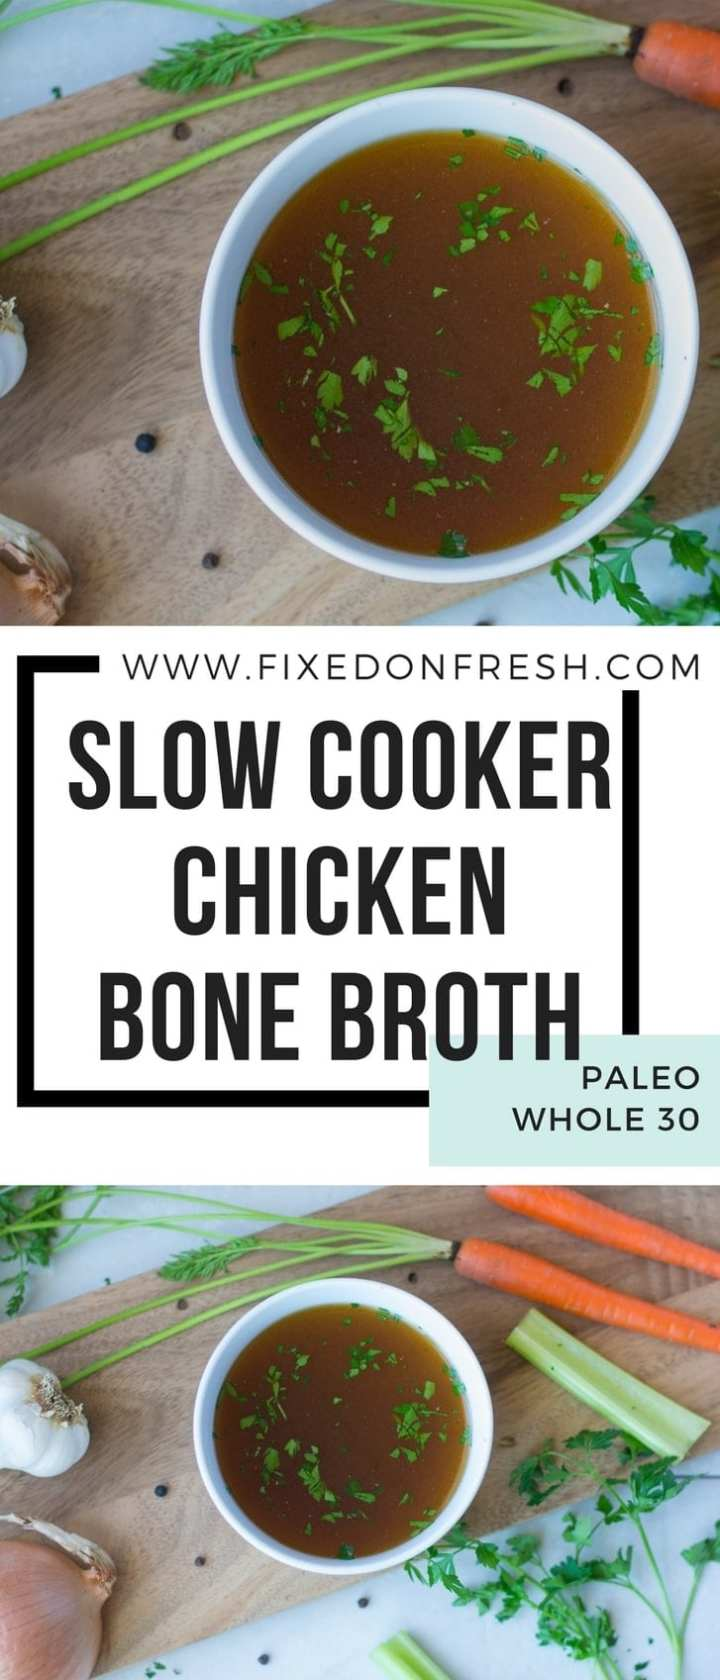 Slow Cooker Chicken Bone Broth from scratch is an easy recipe that will save you tons of money over buying store bought. Learn some of the health benefits of bone broth as well as some easy tips on how to make your own and store it. #bonebroth #recipe